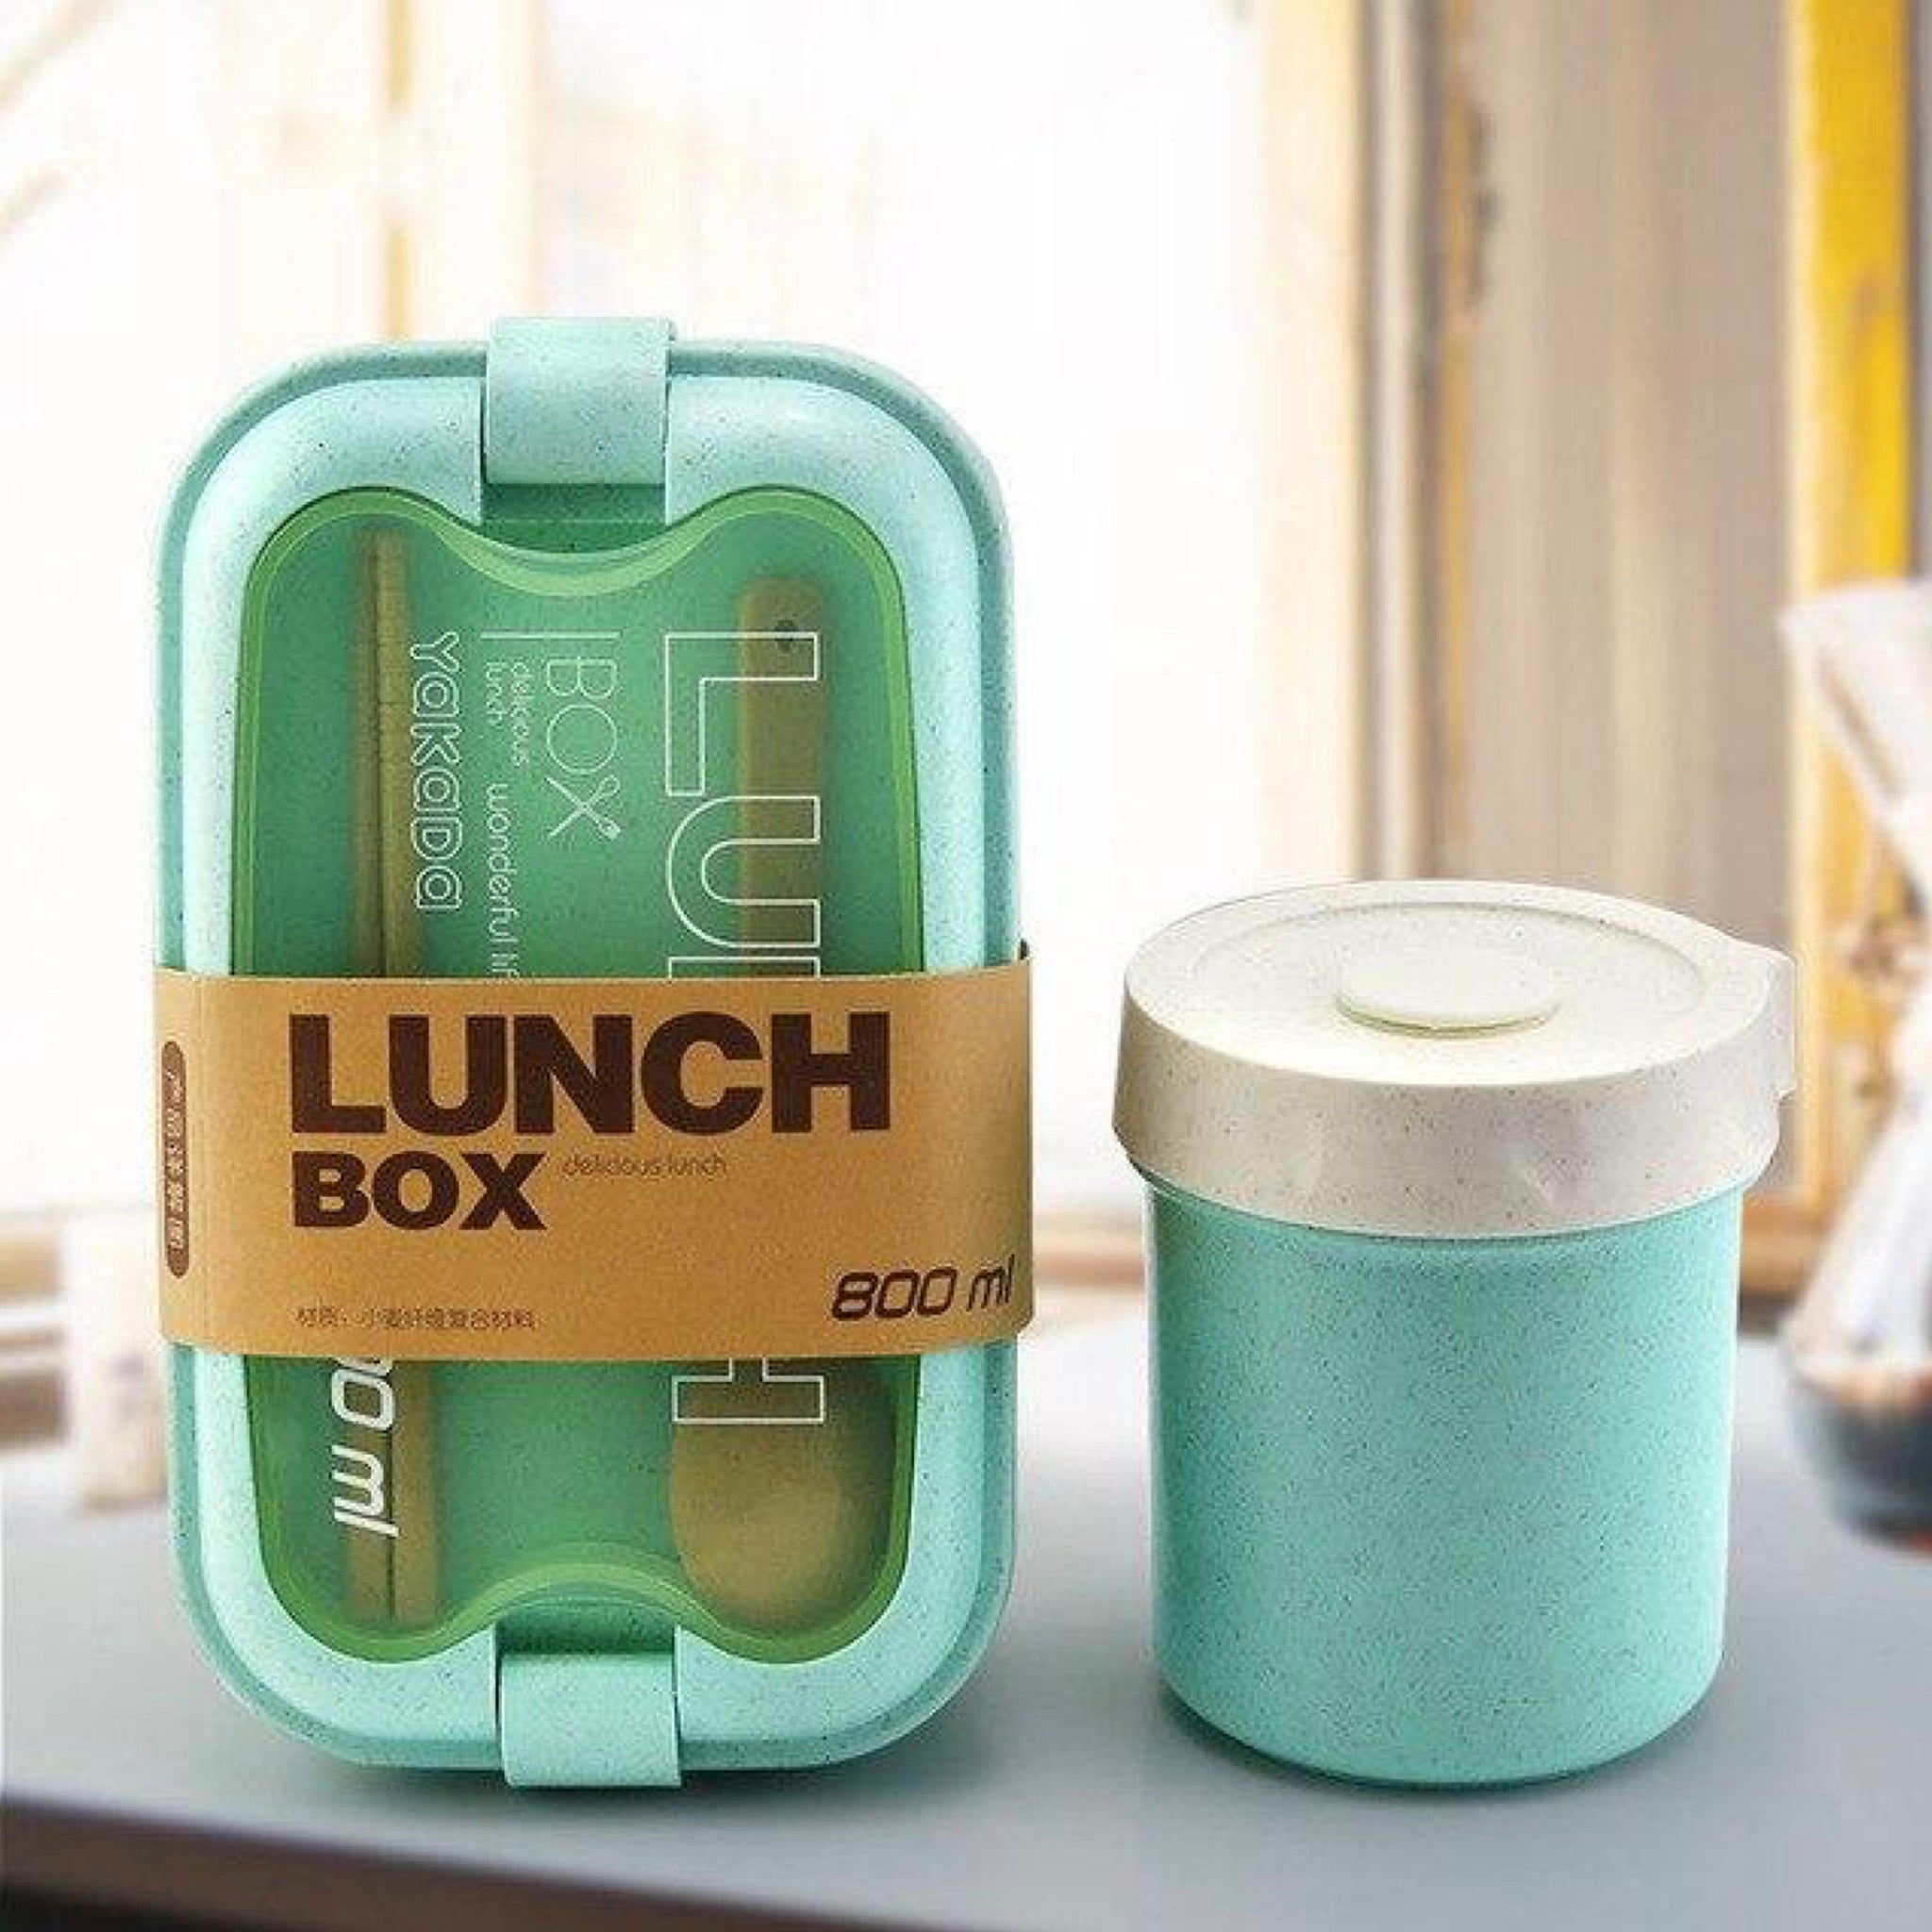 Wheat Straw Lunch Box Set   Portable Eco Friendly Bento Boxes with Tableware Large Capacity Outdoor Lunchbox Soup Box color Green Trend